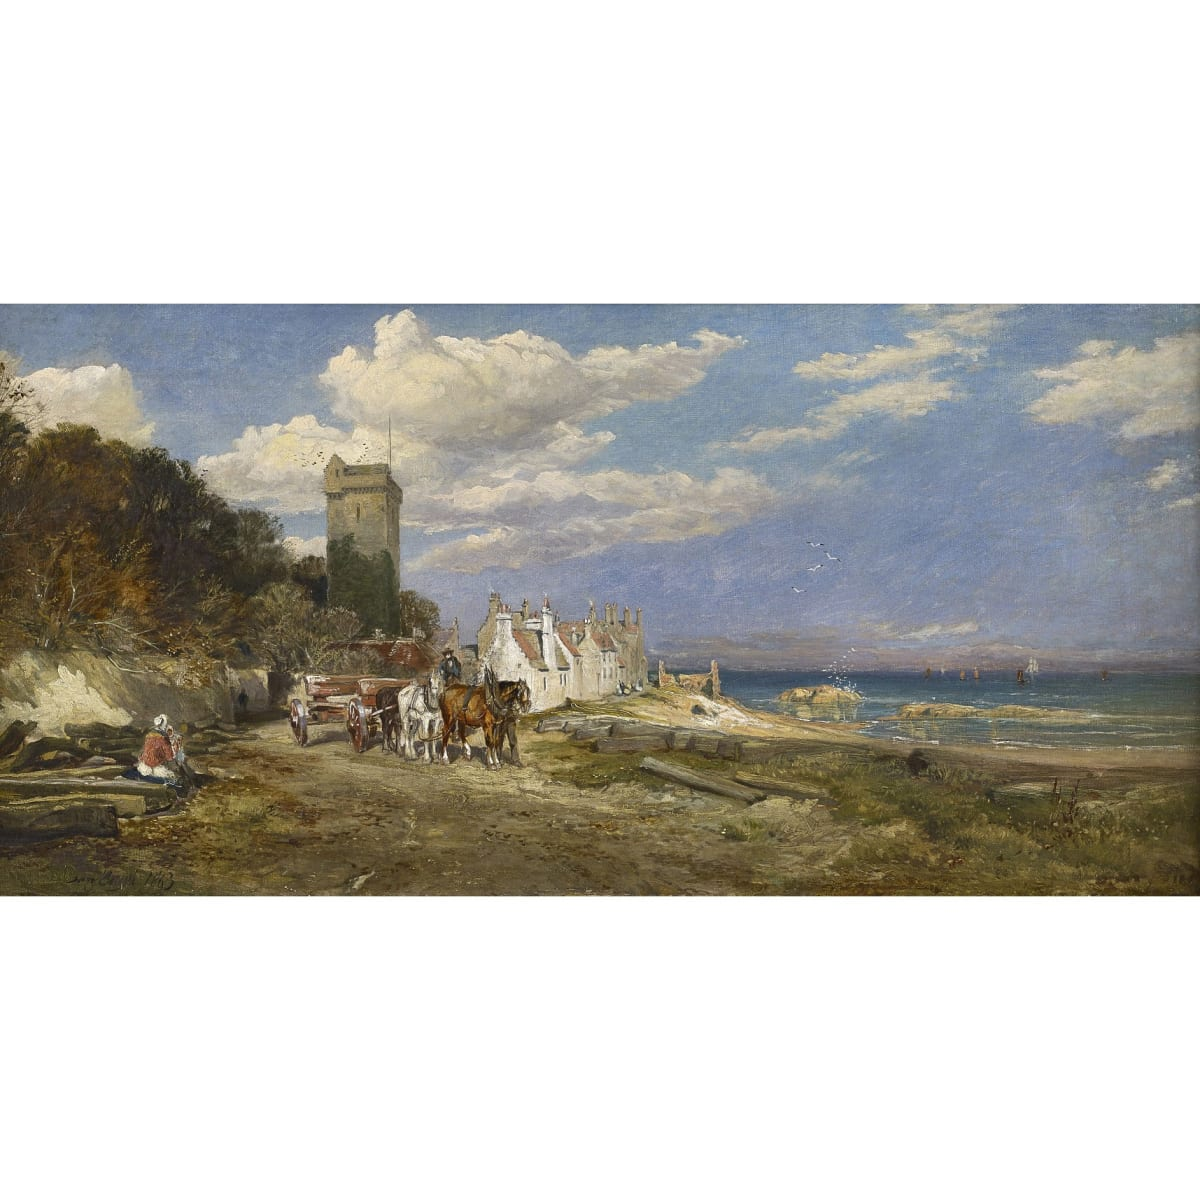 Sam Bough Dysart Castle, 1863 signed and dated 1863 oil on canvas 14 x 28 inches